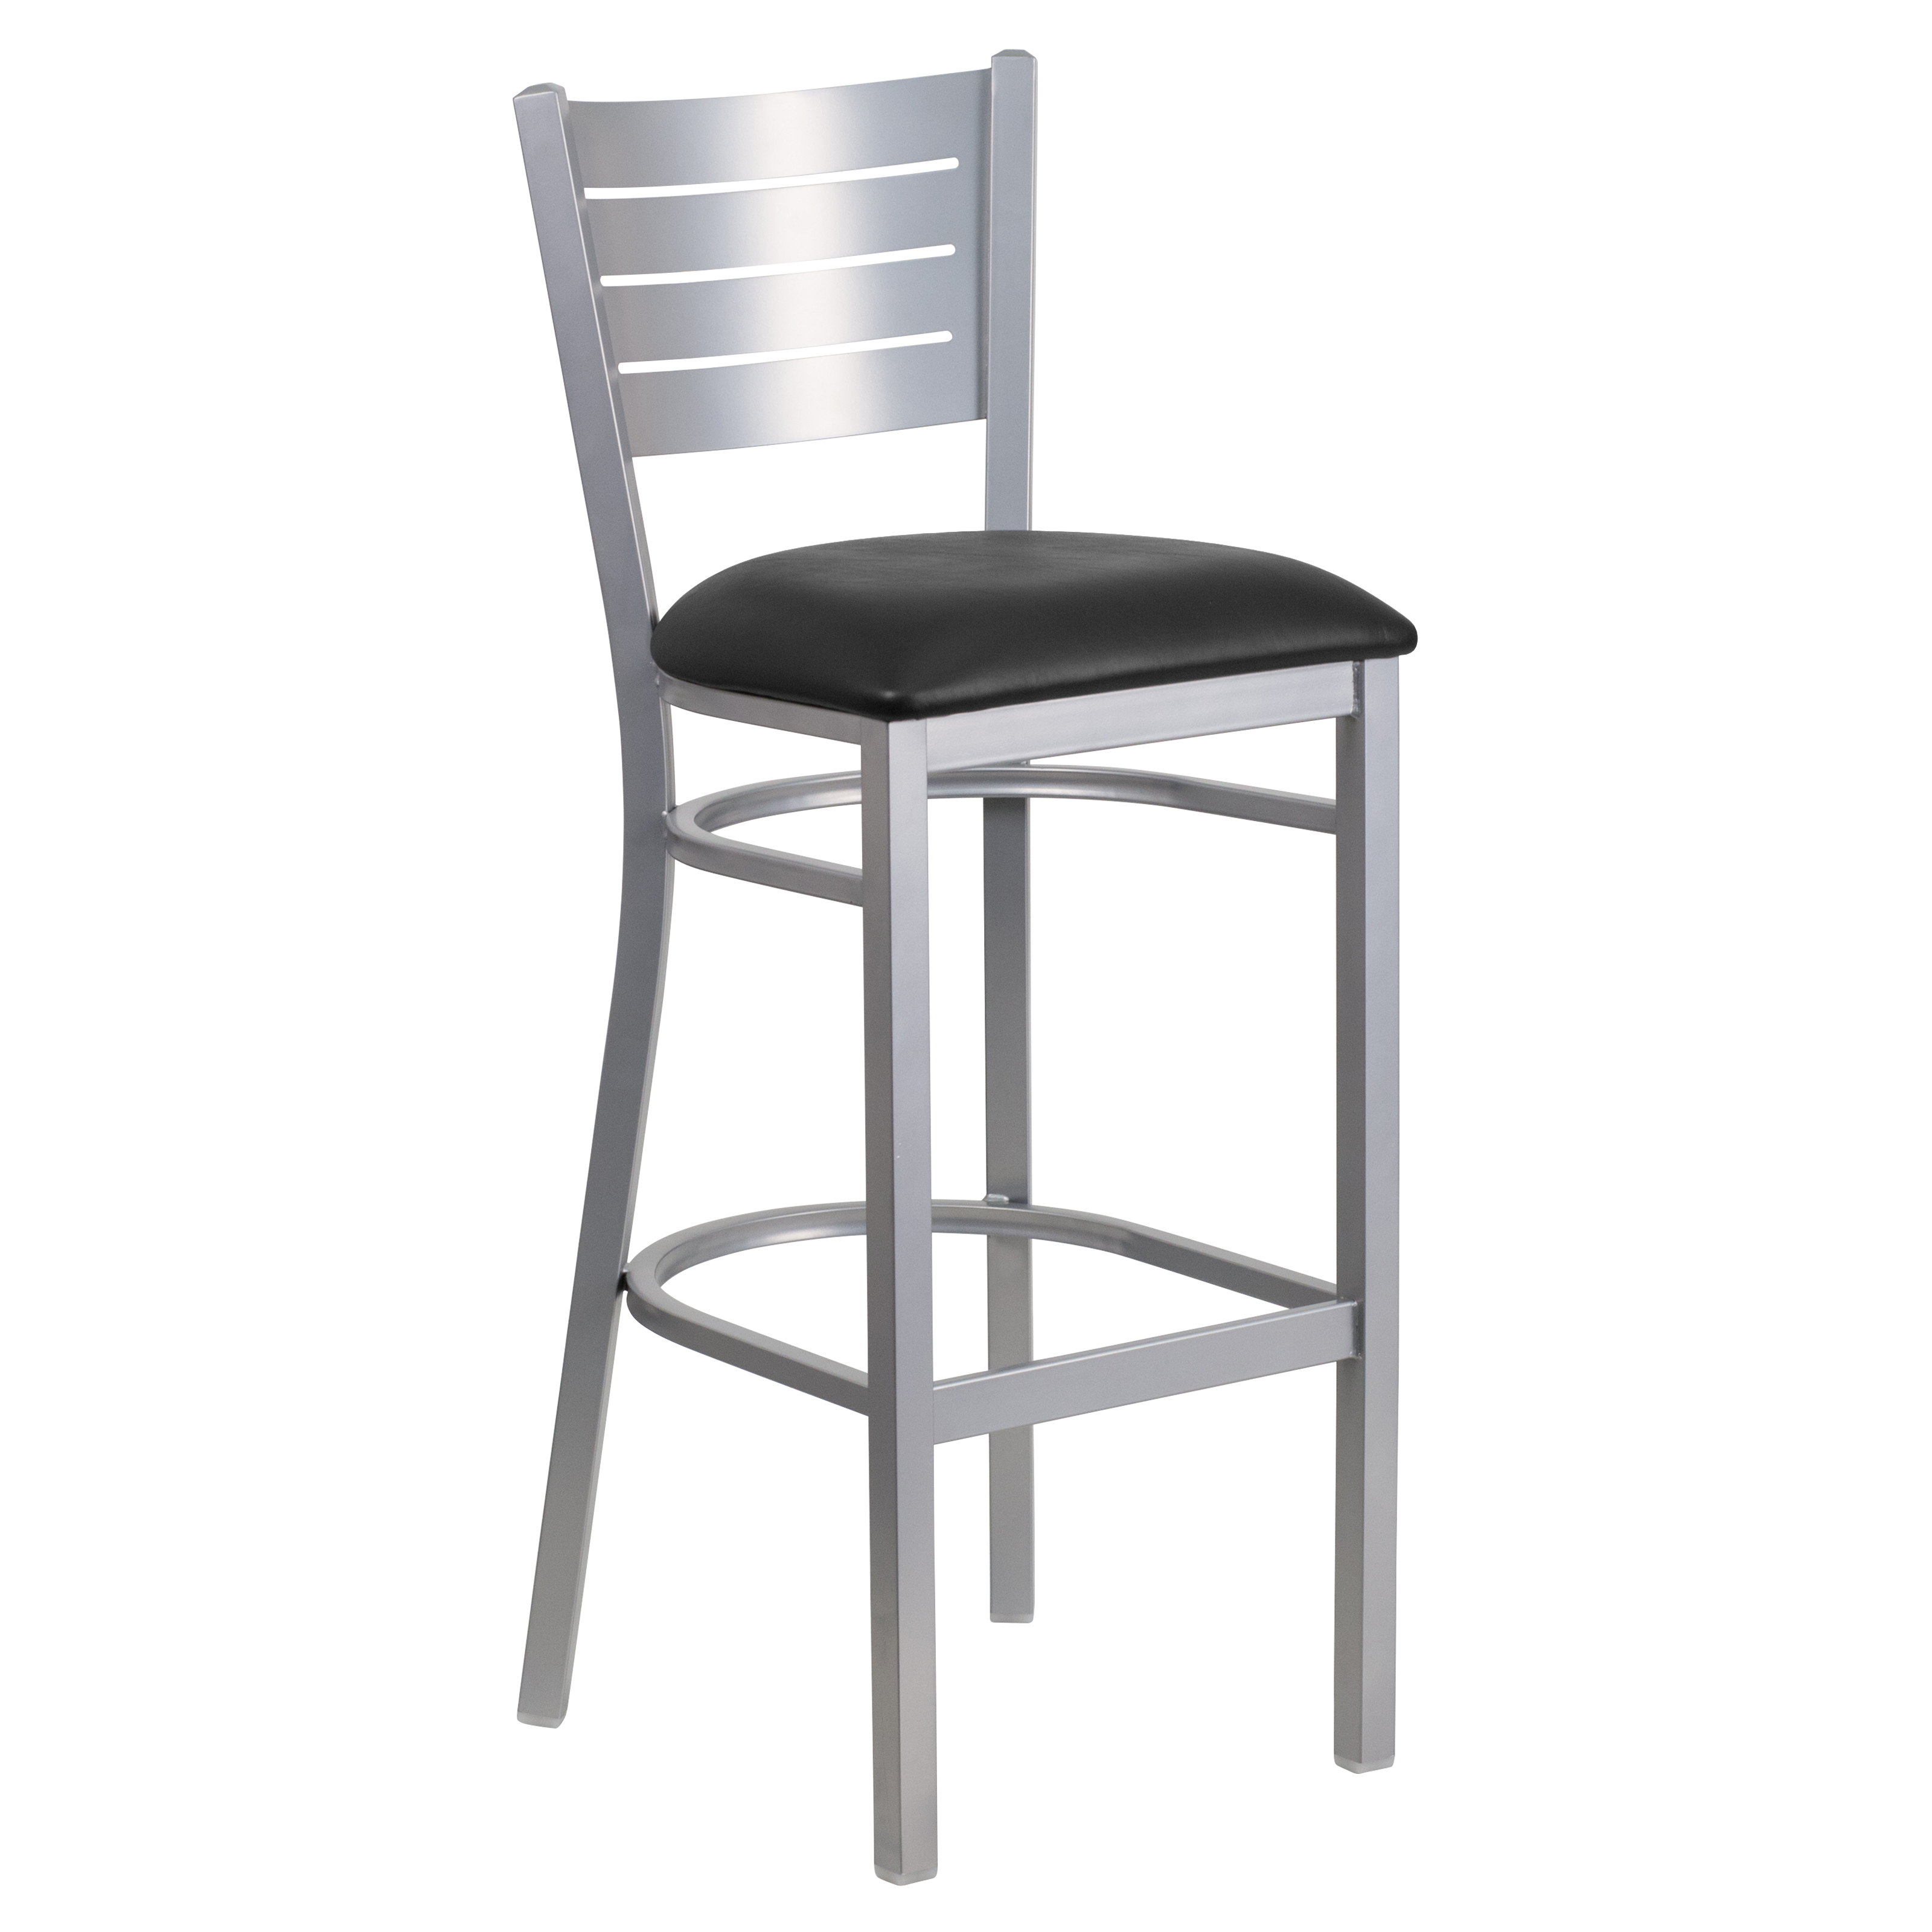 Flash Furniture 31 in. Hercules Vertical Slat Back Wood Seat Restaurant Bar Stool | Hayneedle  sc 1 st  Hayneedle : bar stool office chair - islam-shia.org